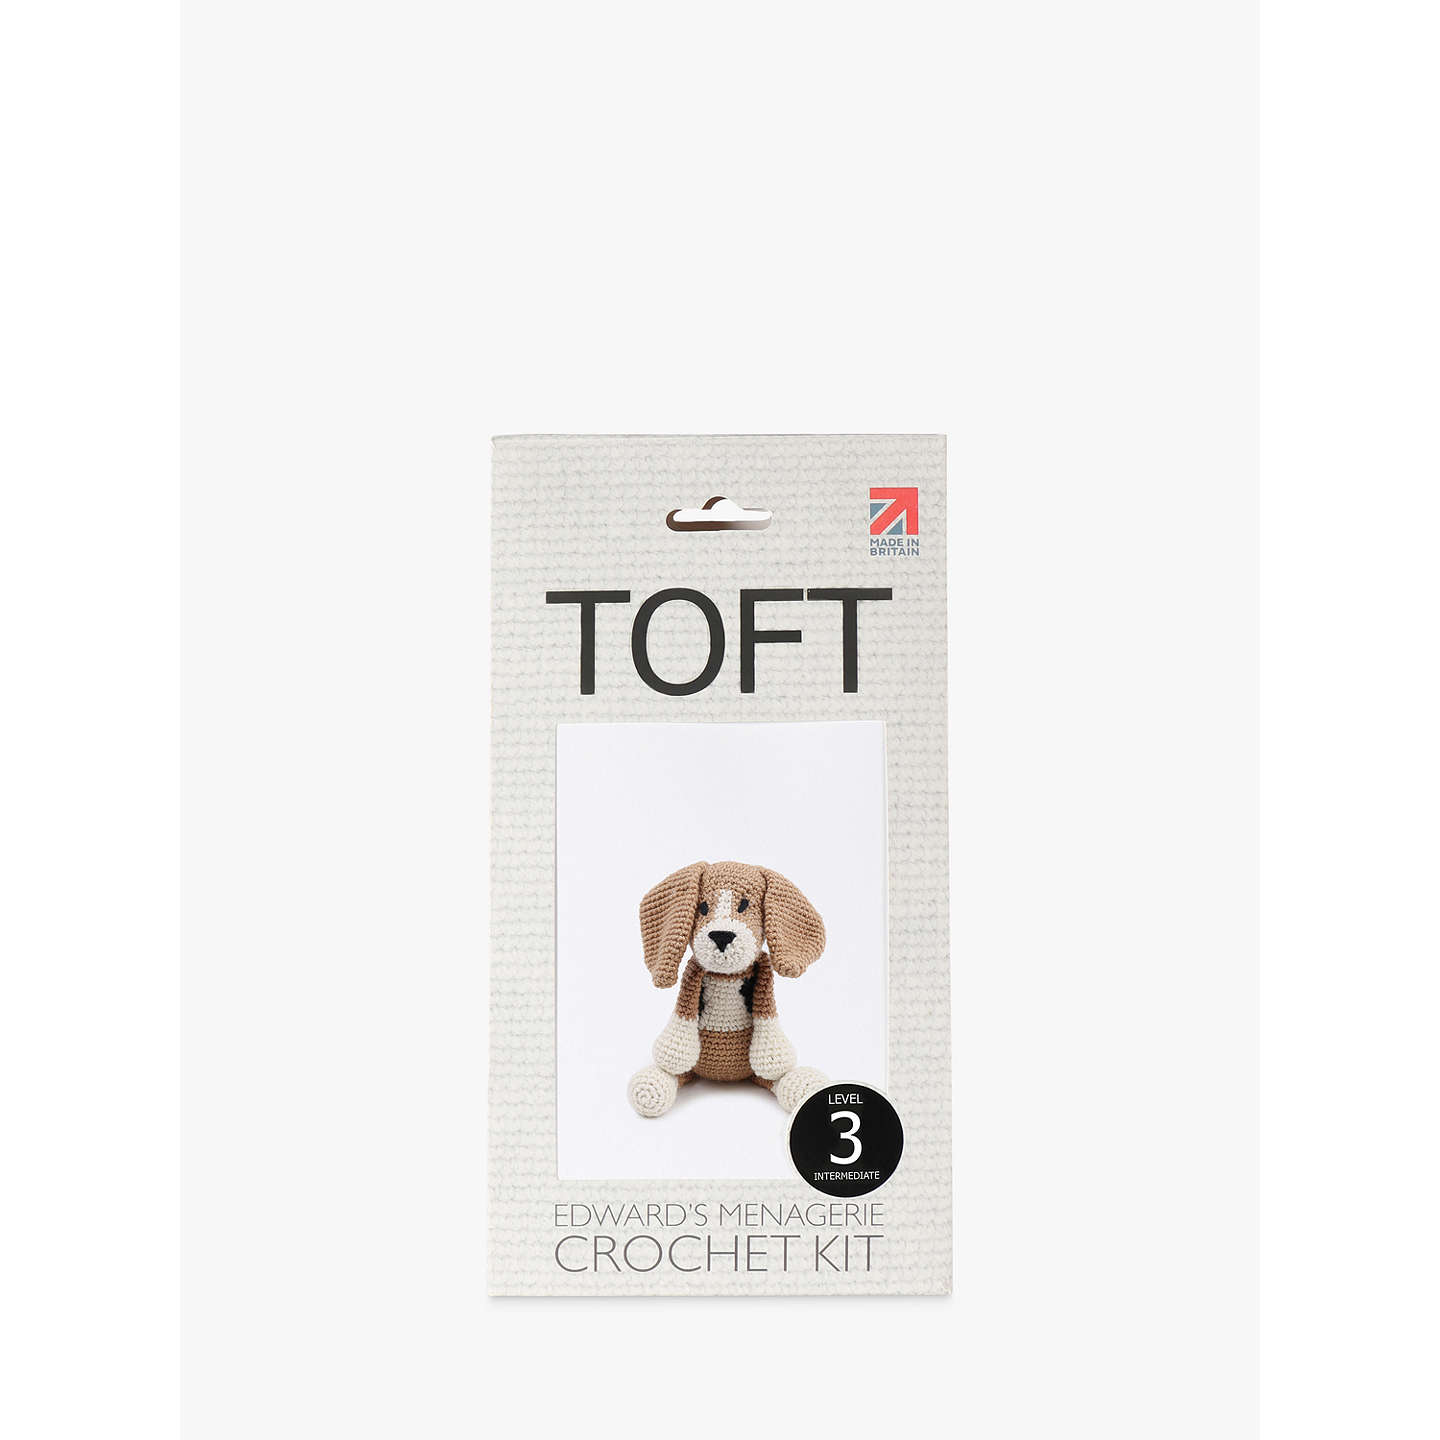 BuyToft Lola The Beagle Crochet Kit Online at johnlewis.com